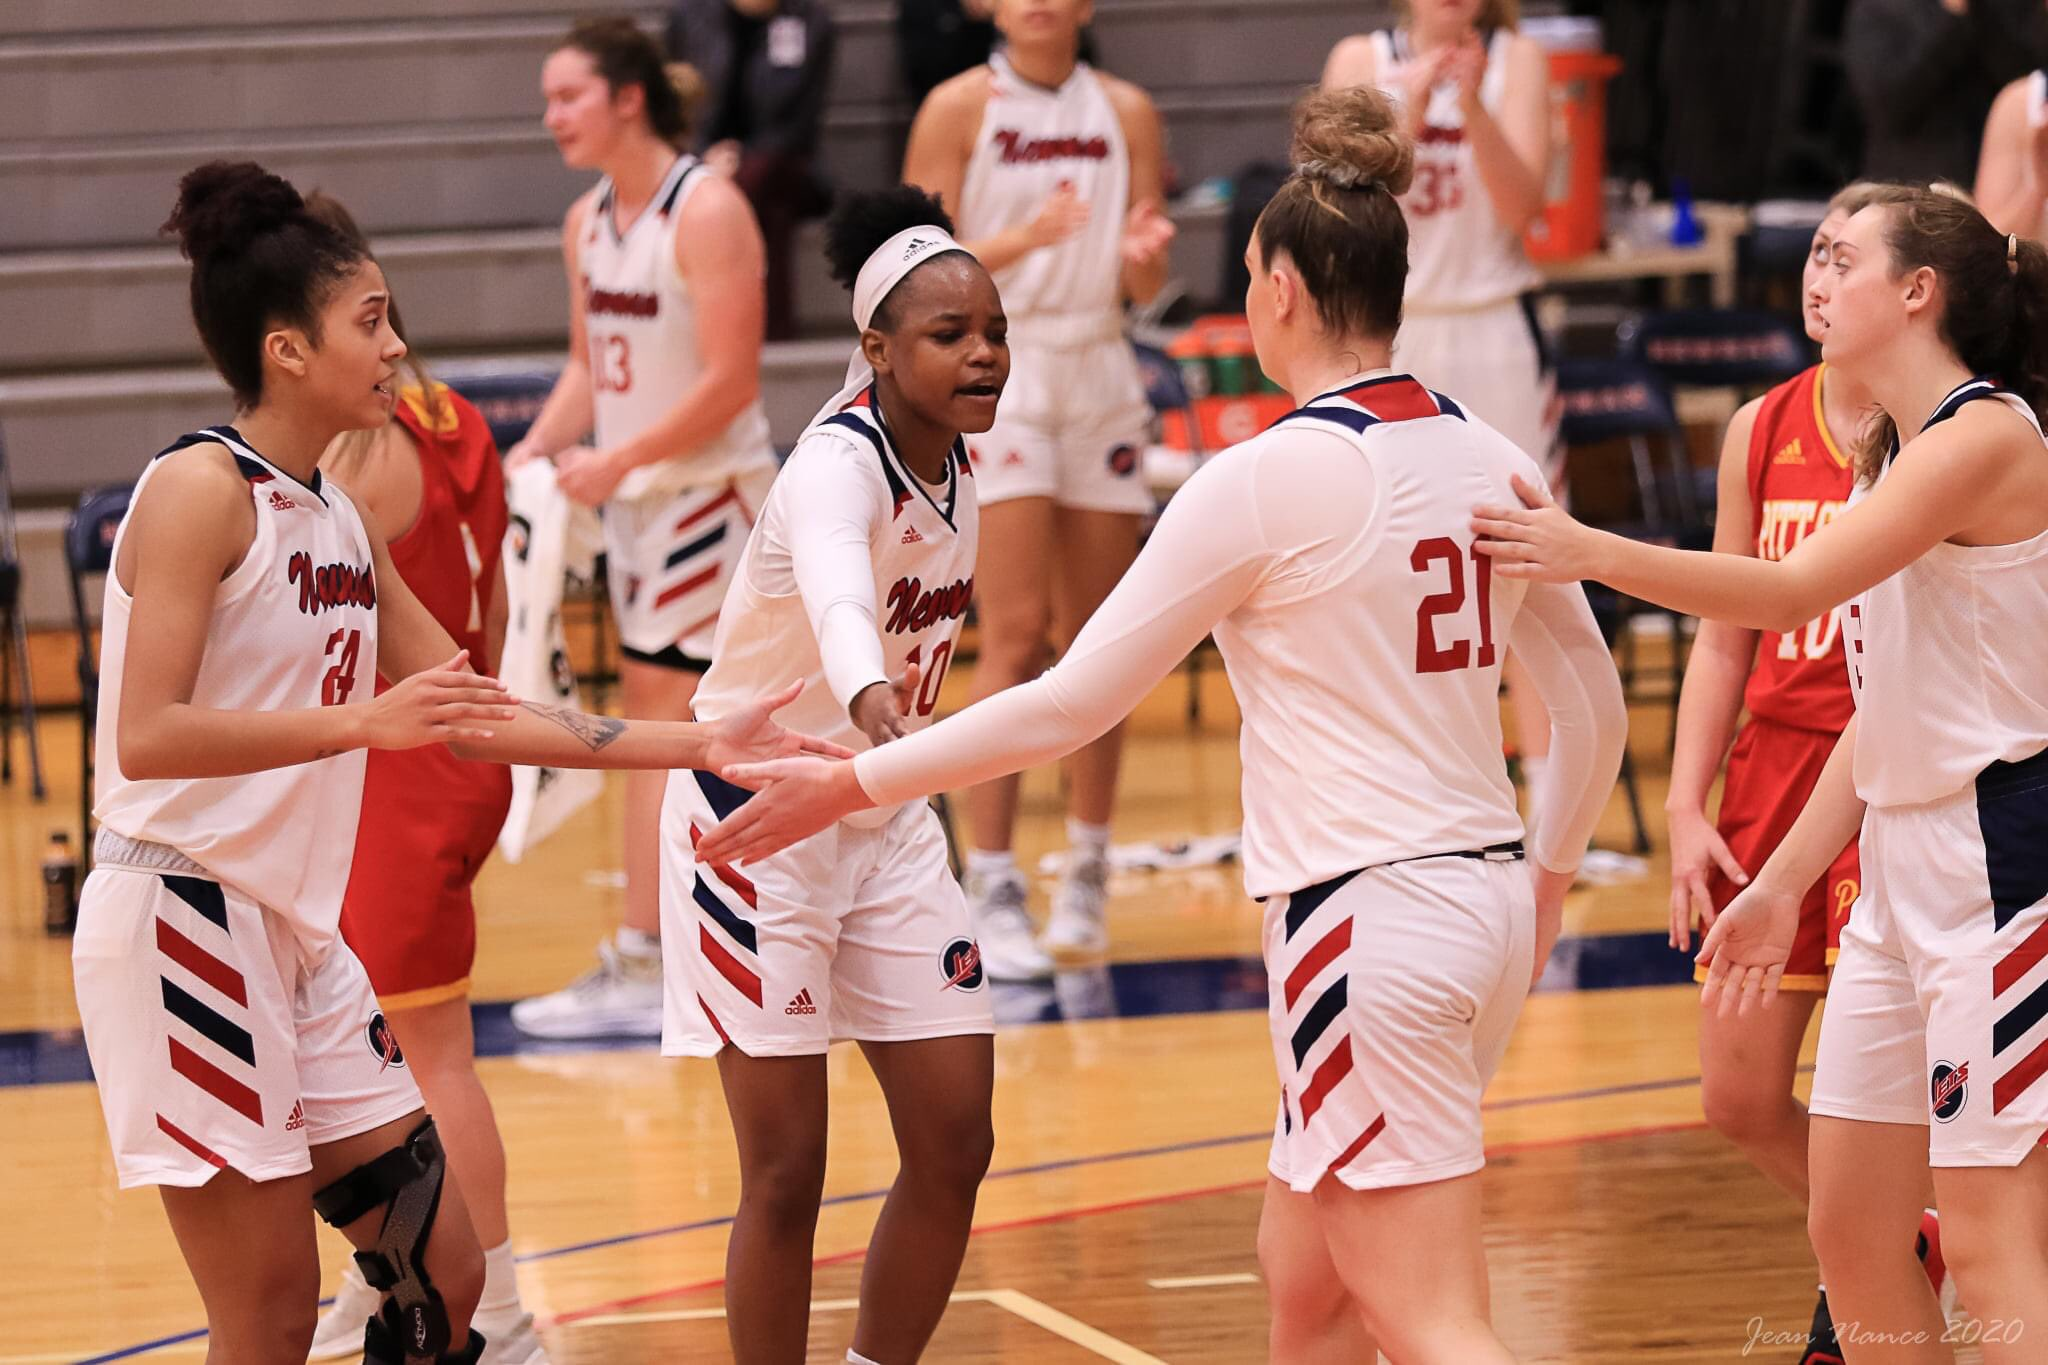 Newman nearly pulls off upset against Division 1 opponent